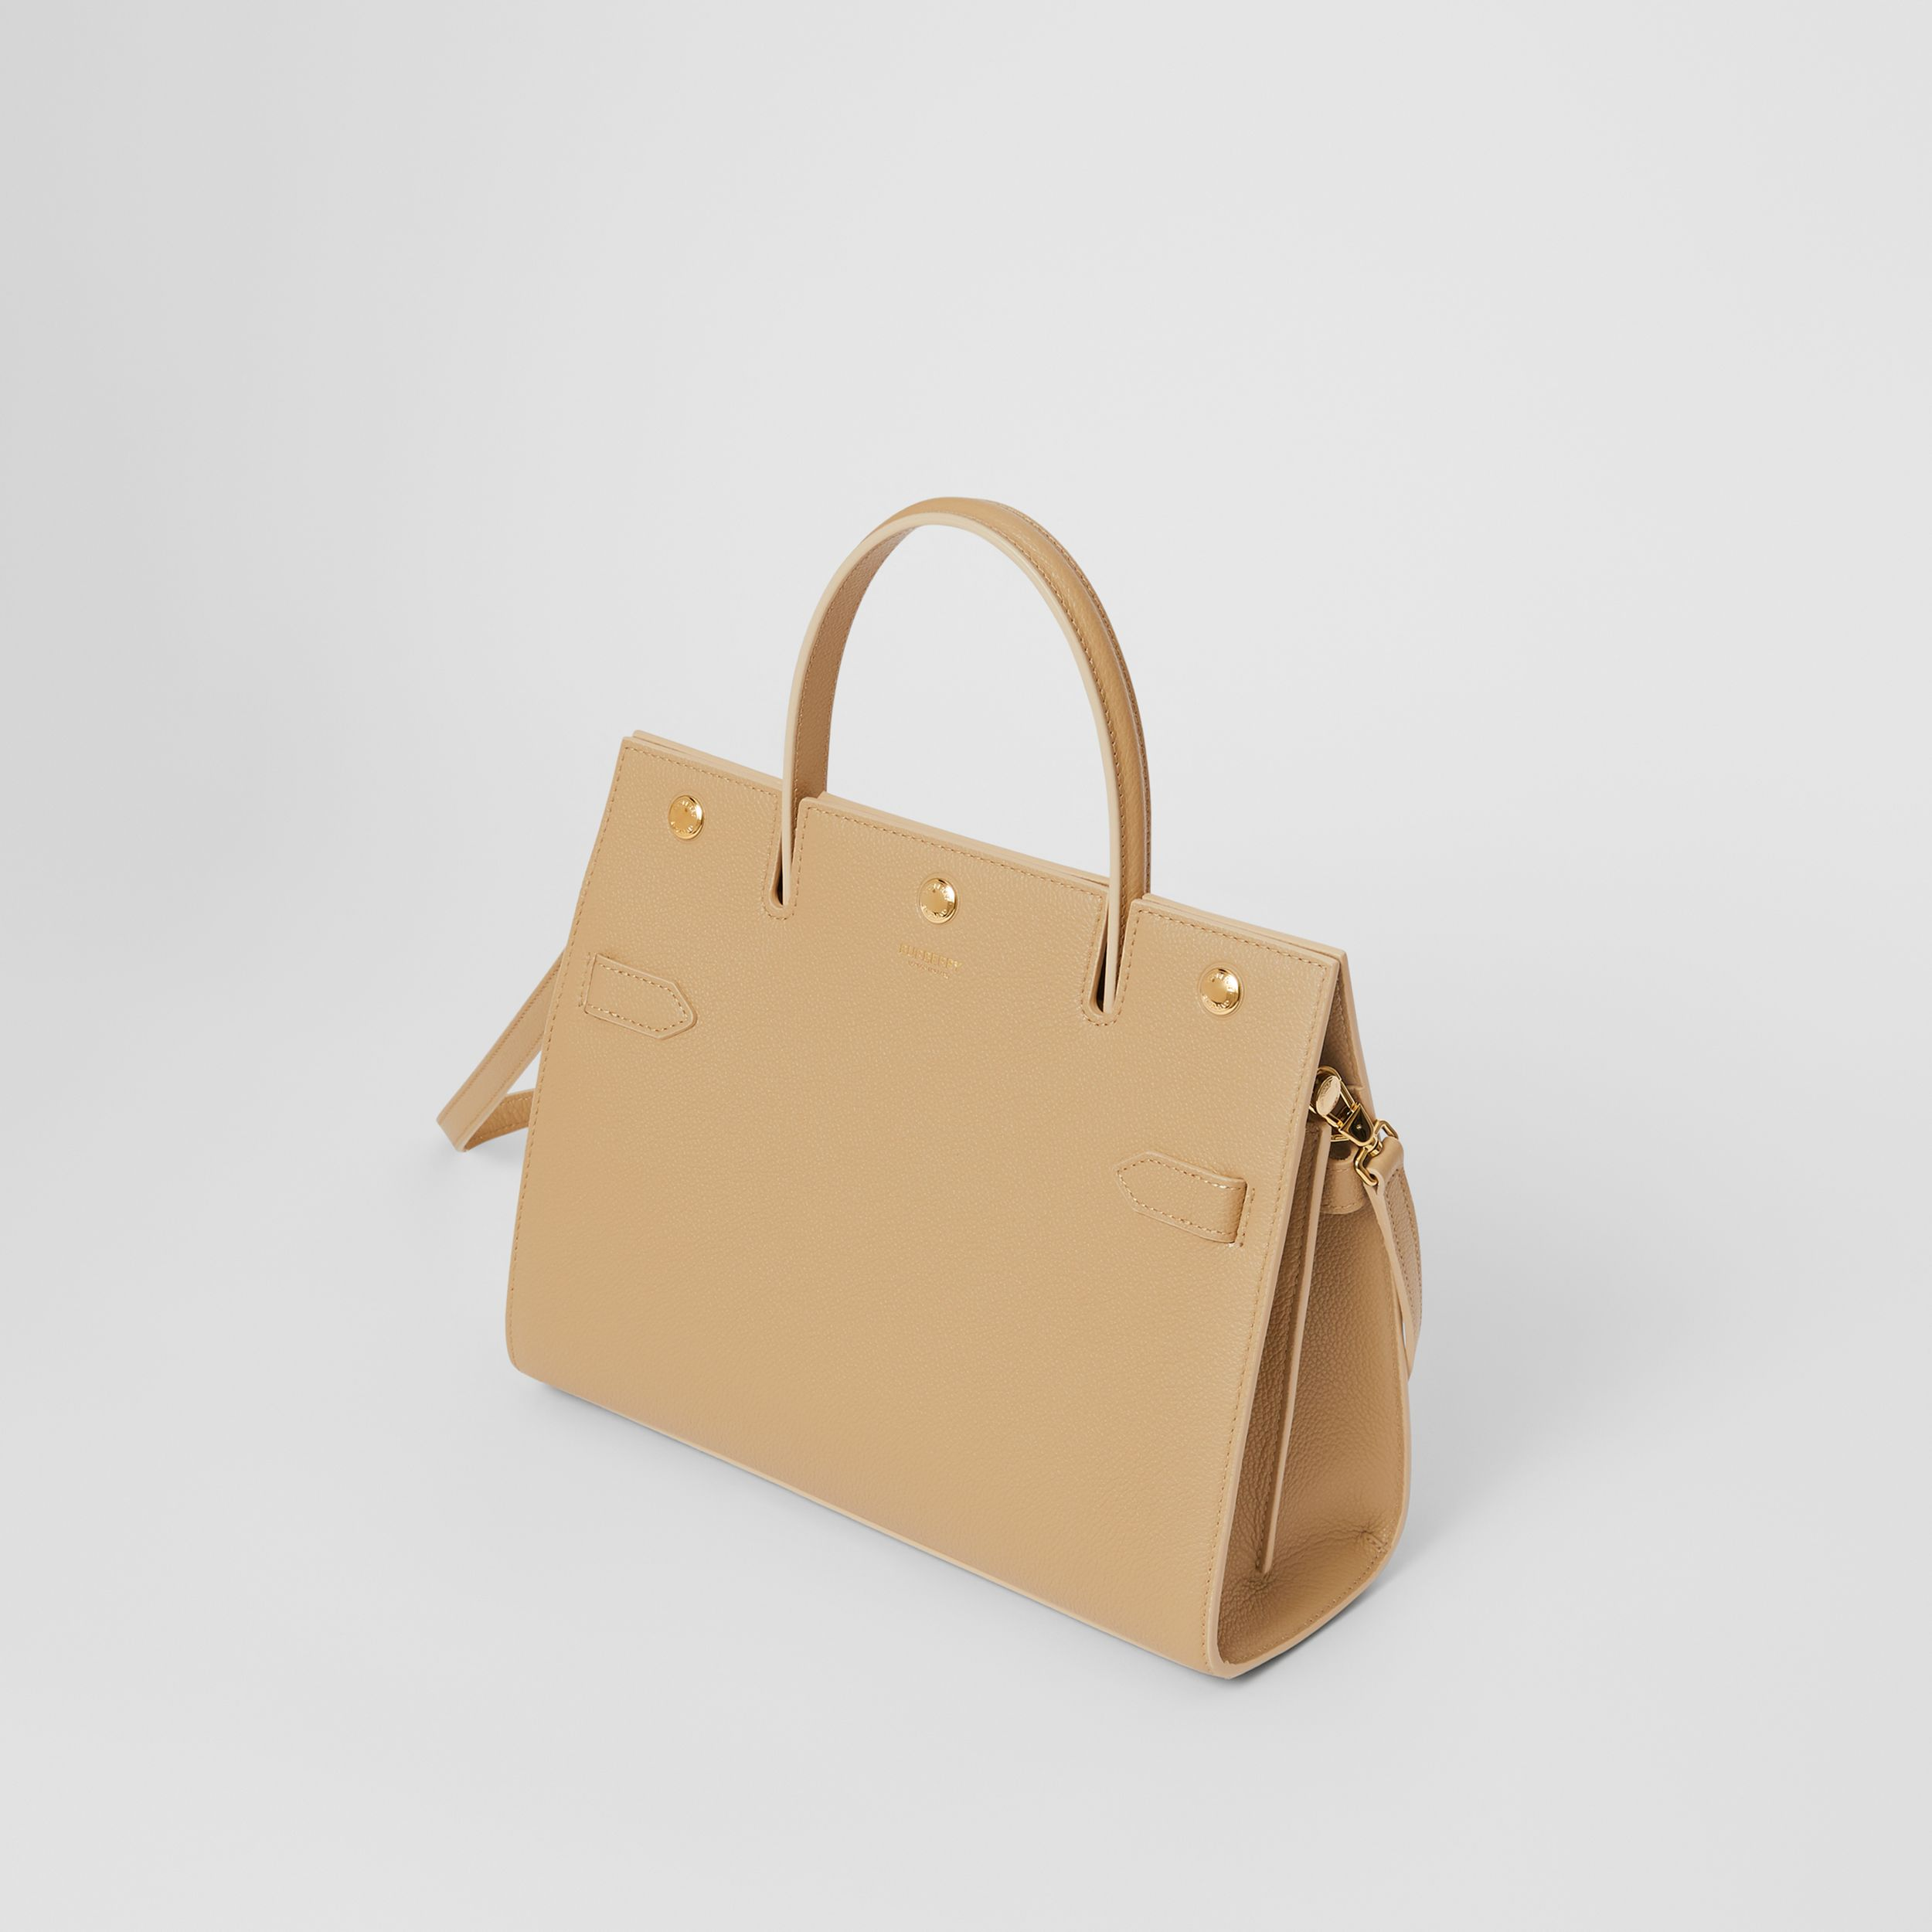 Small Leather Title Bag in Honey - Women | Burberry - 4